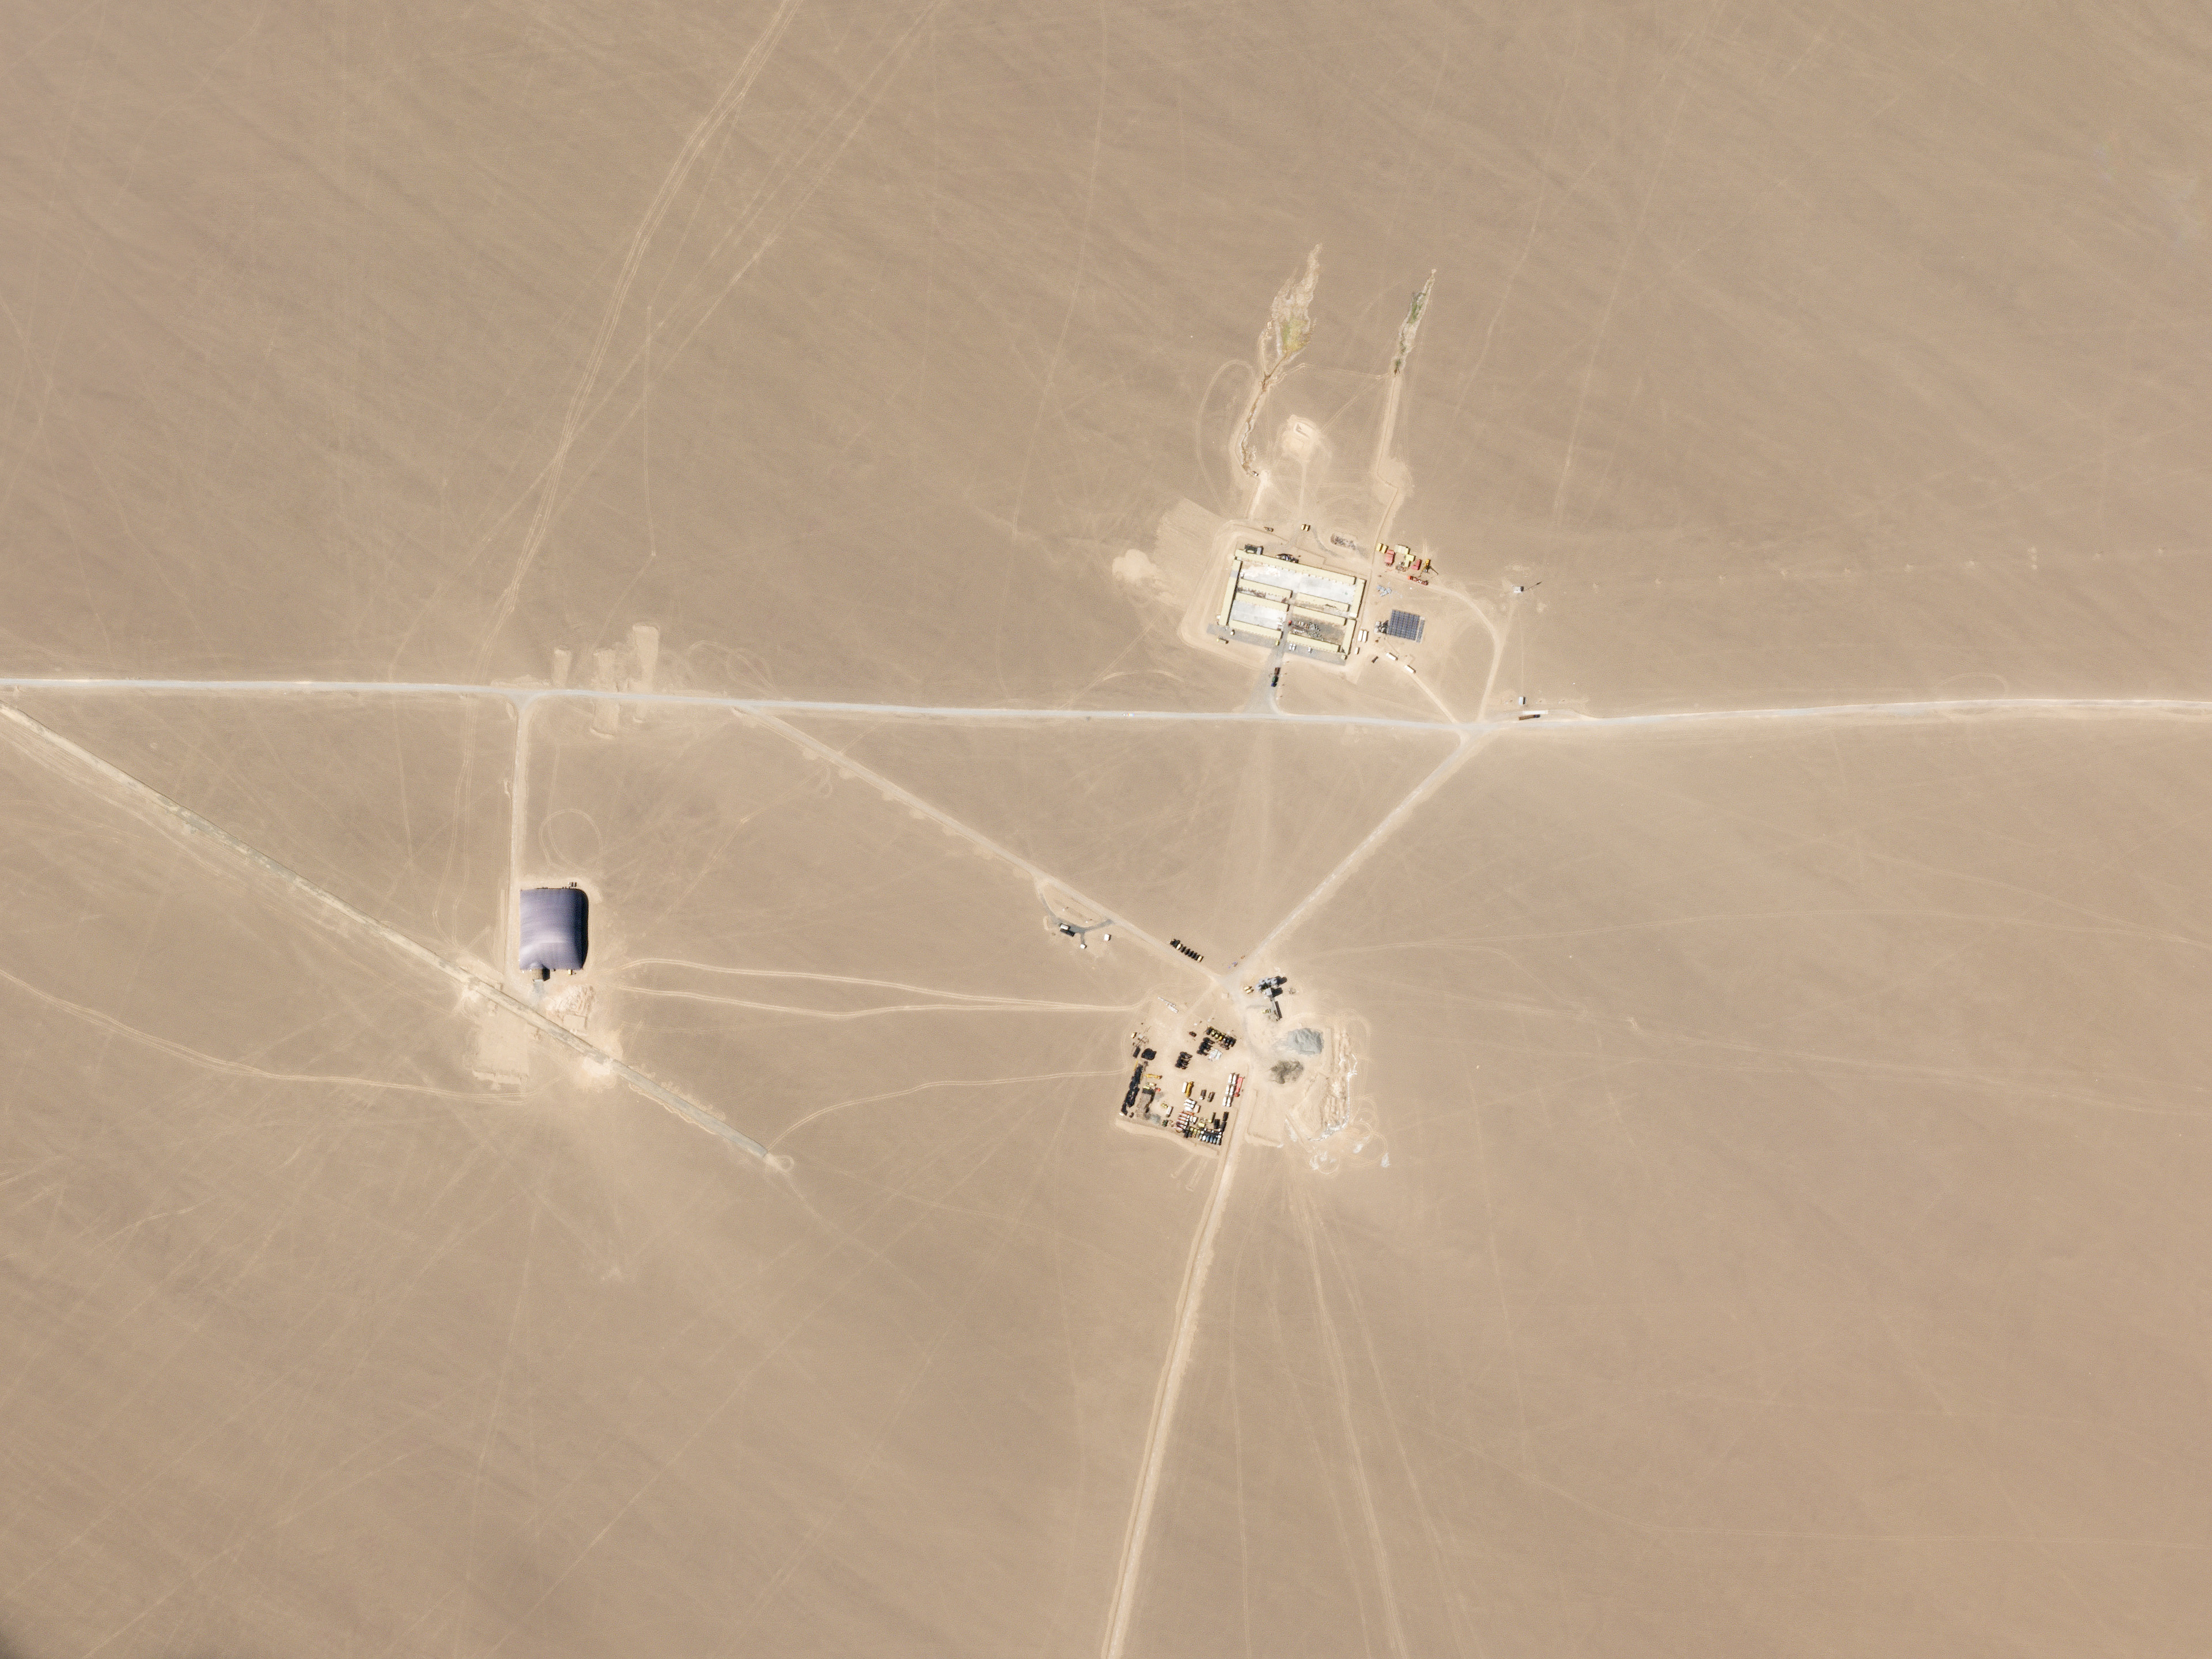 China Spotted Building 110 Secret Nuclear Missile Bases in Desert